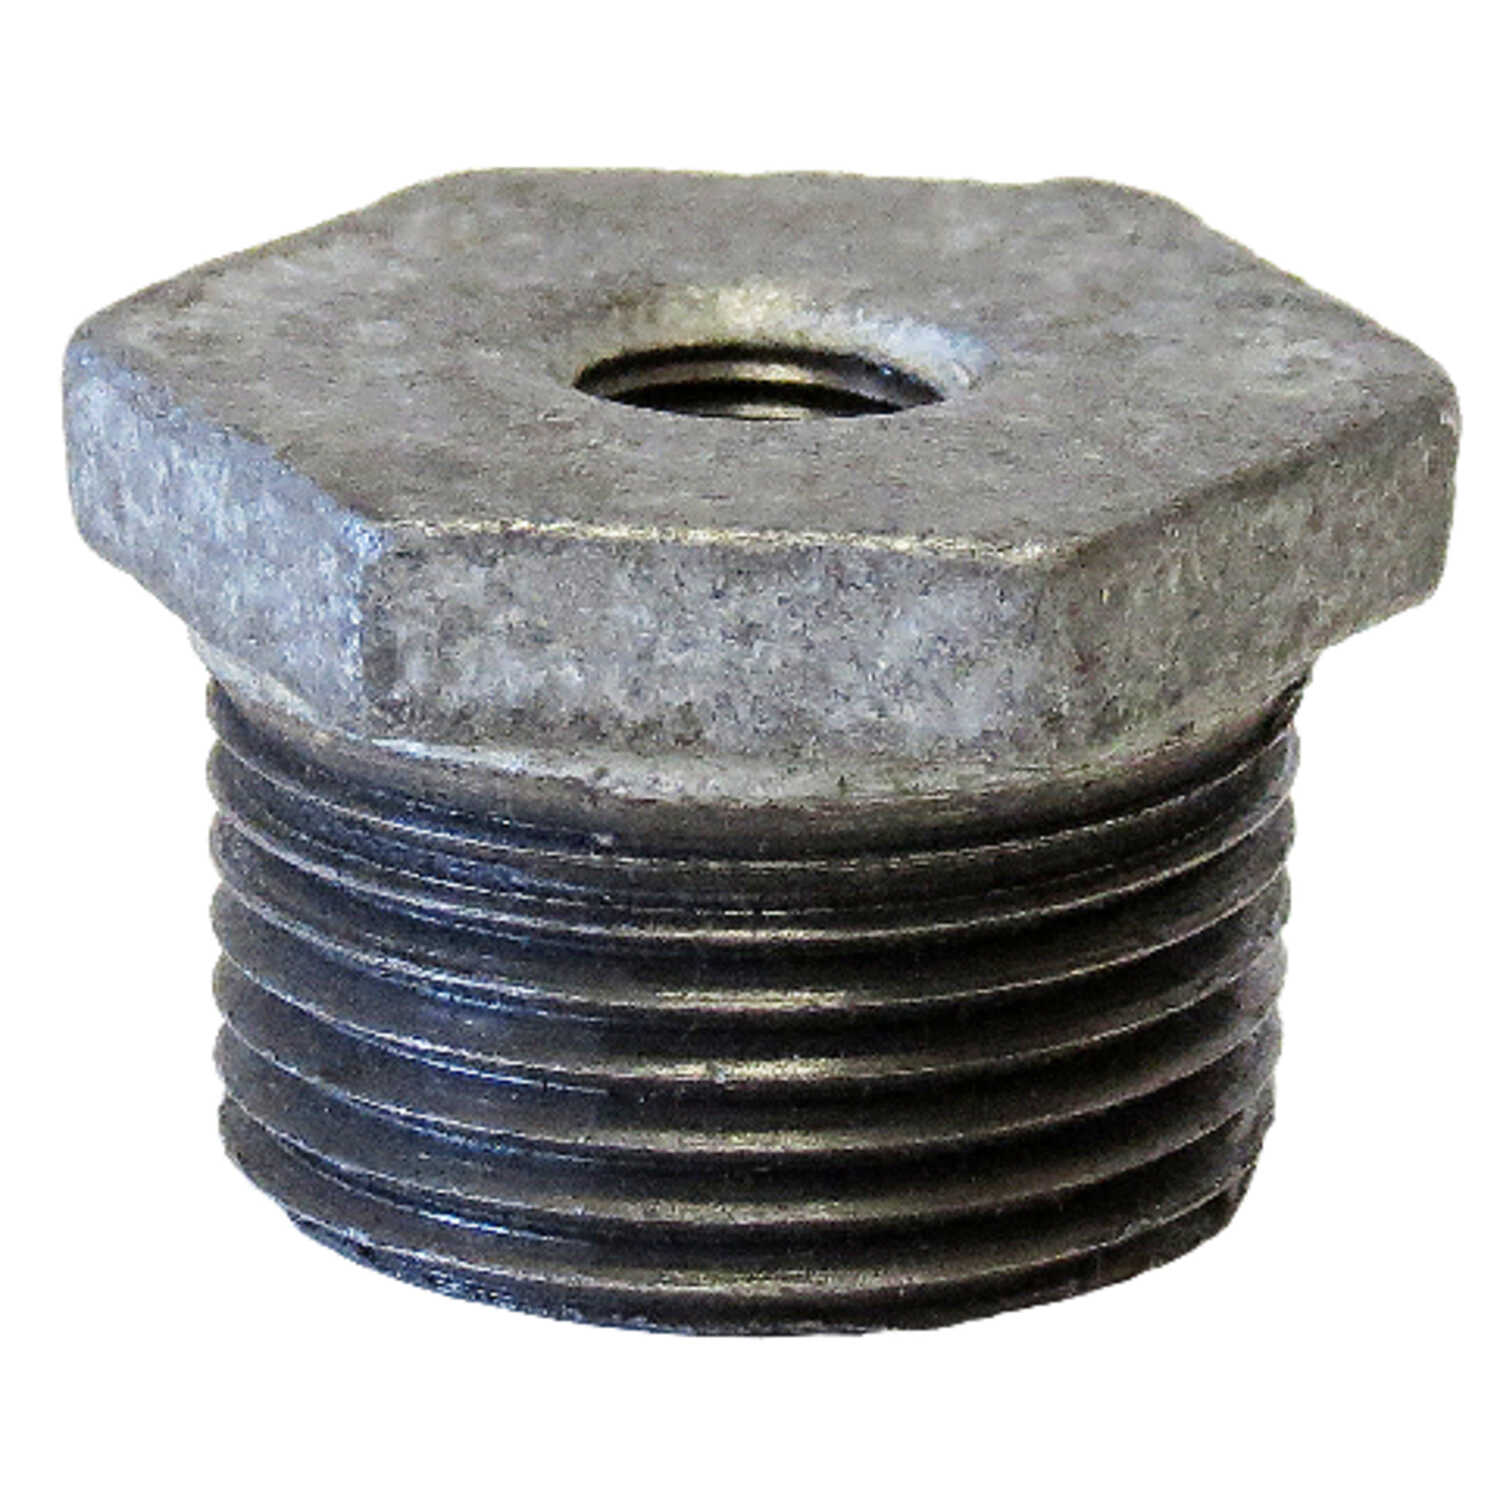 Anvil  3/8 in. MPT   x 1/4 in. Dia. FPT  Galvanized  Steel  Hex Bushing